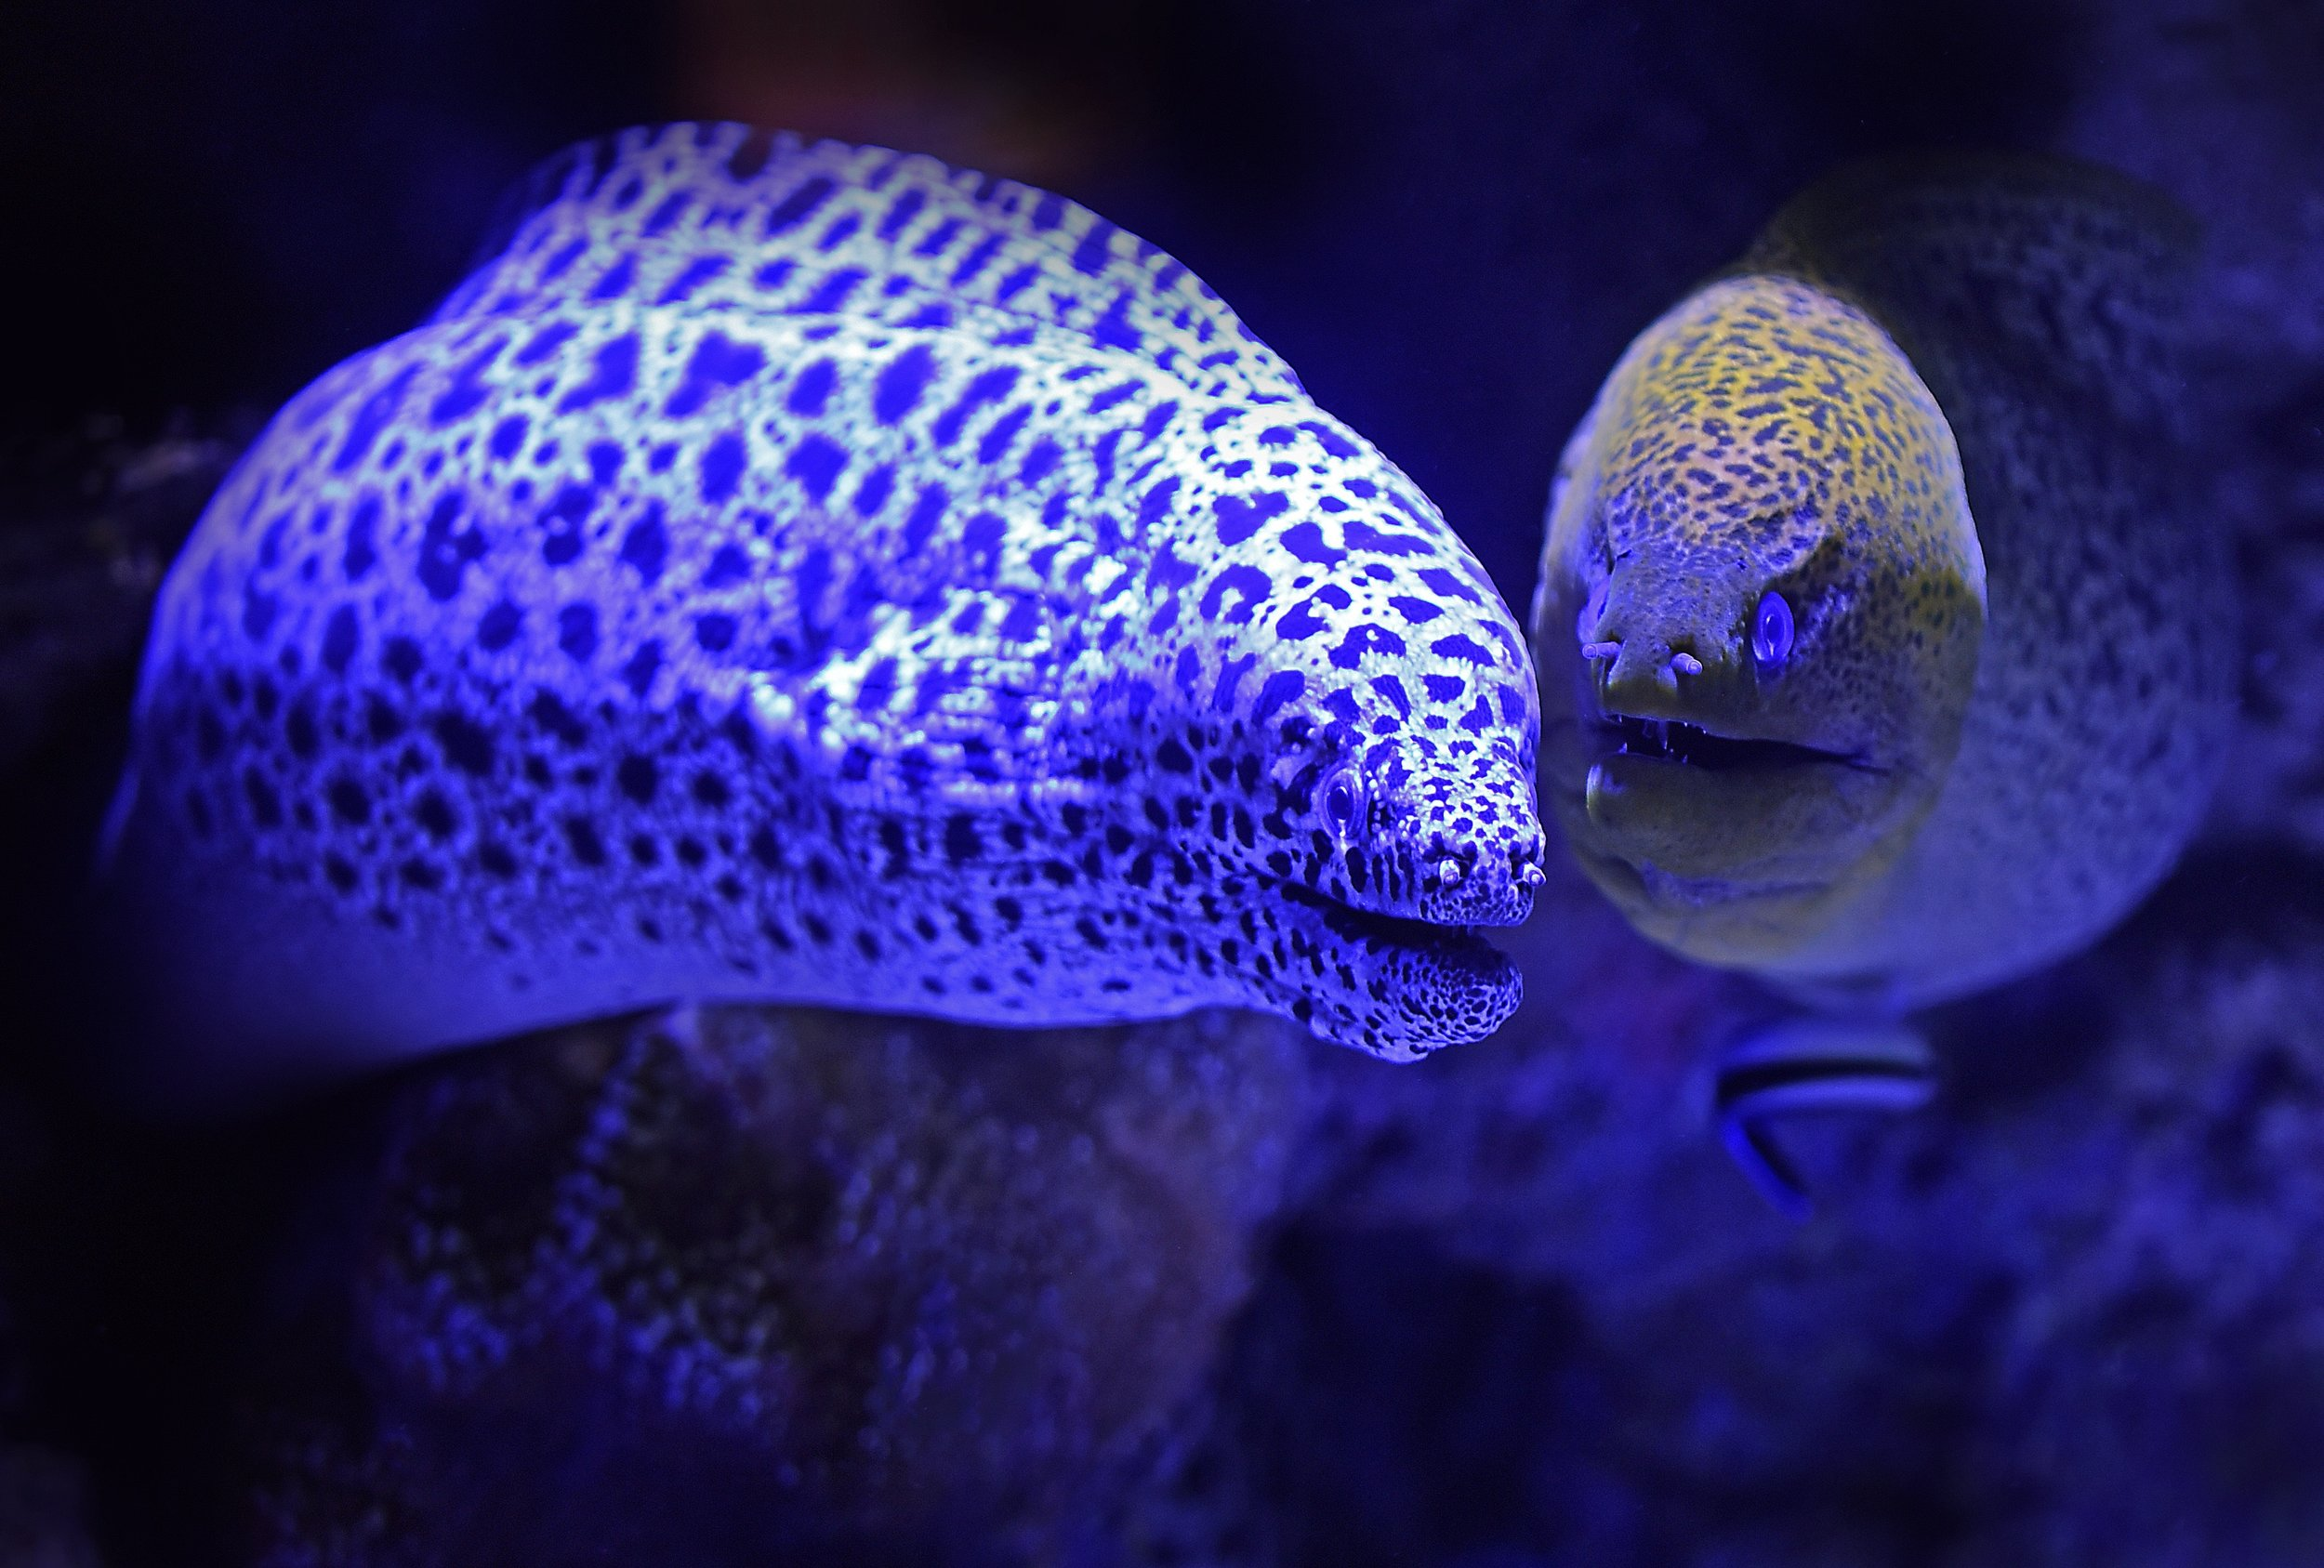 """""""What do you call an elf who sings? - a wrapper!"""" Two snowflake moray eels sharing a joke.  ©  David Clode."""